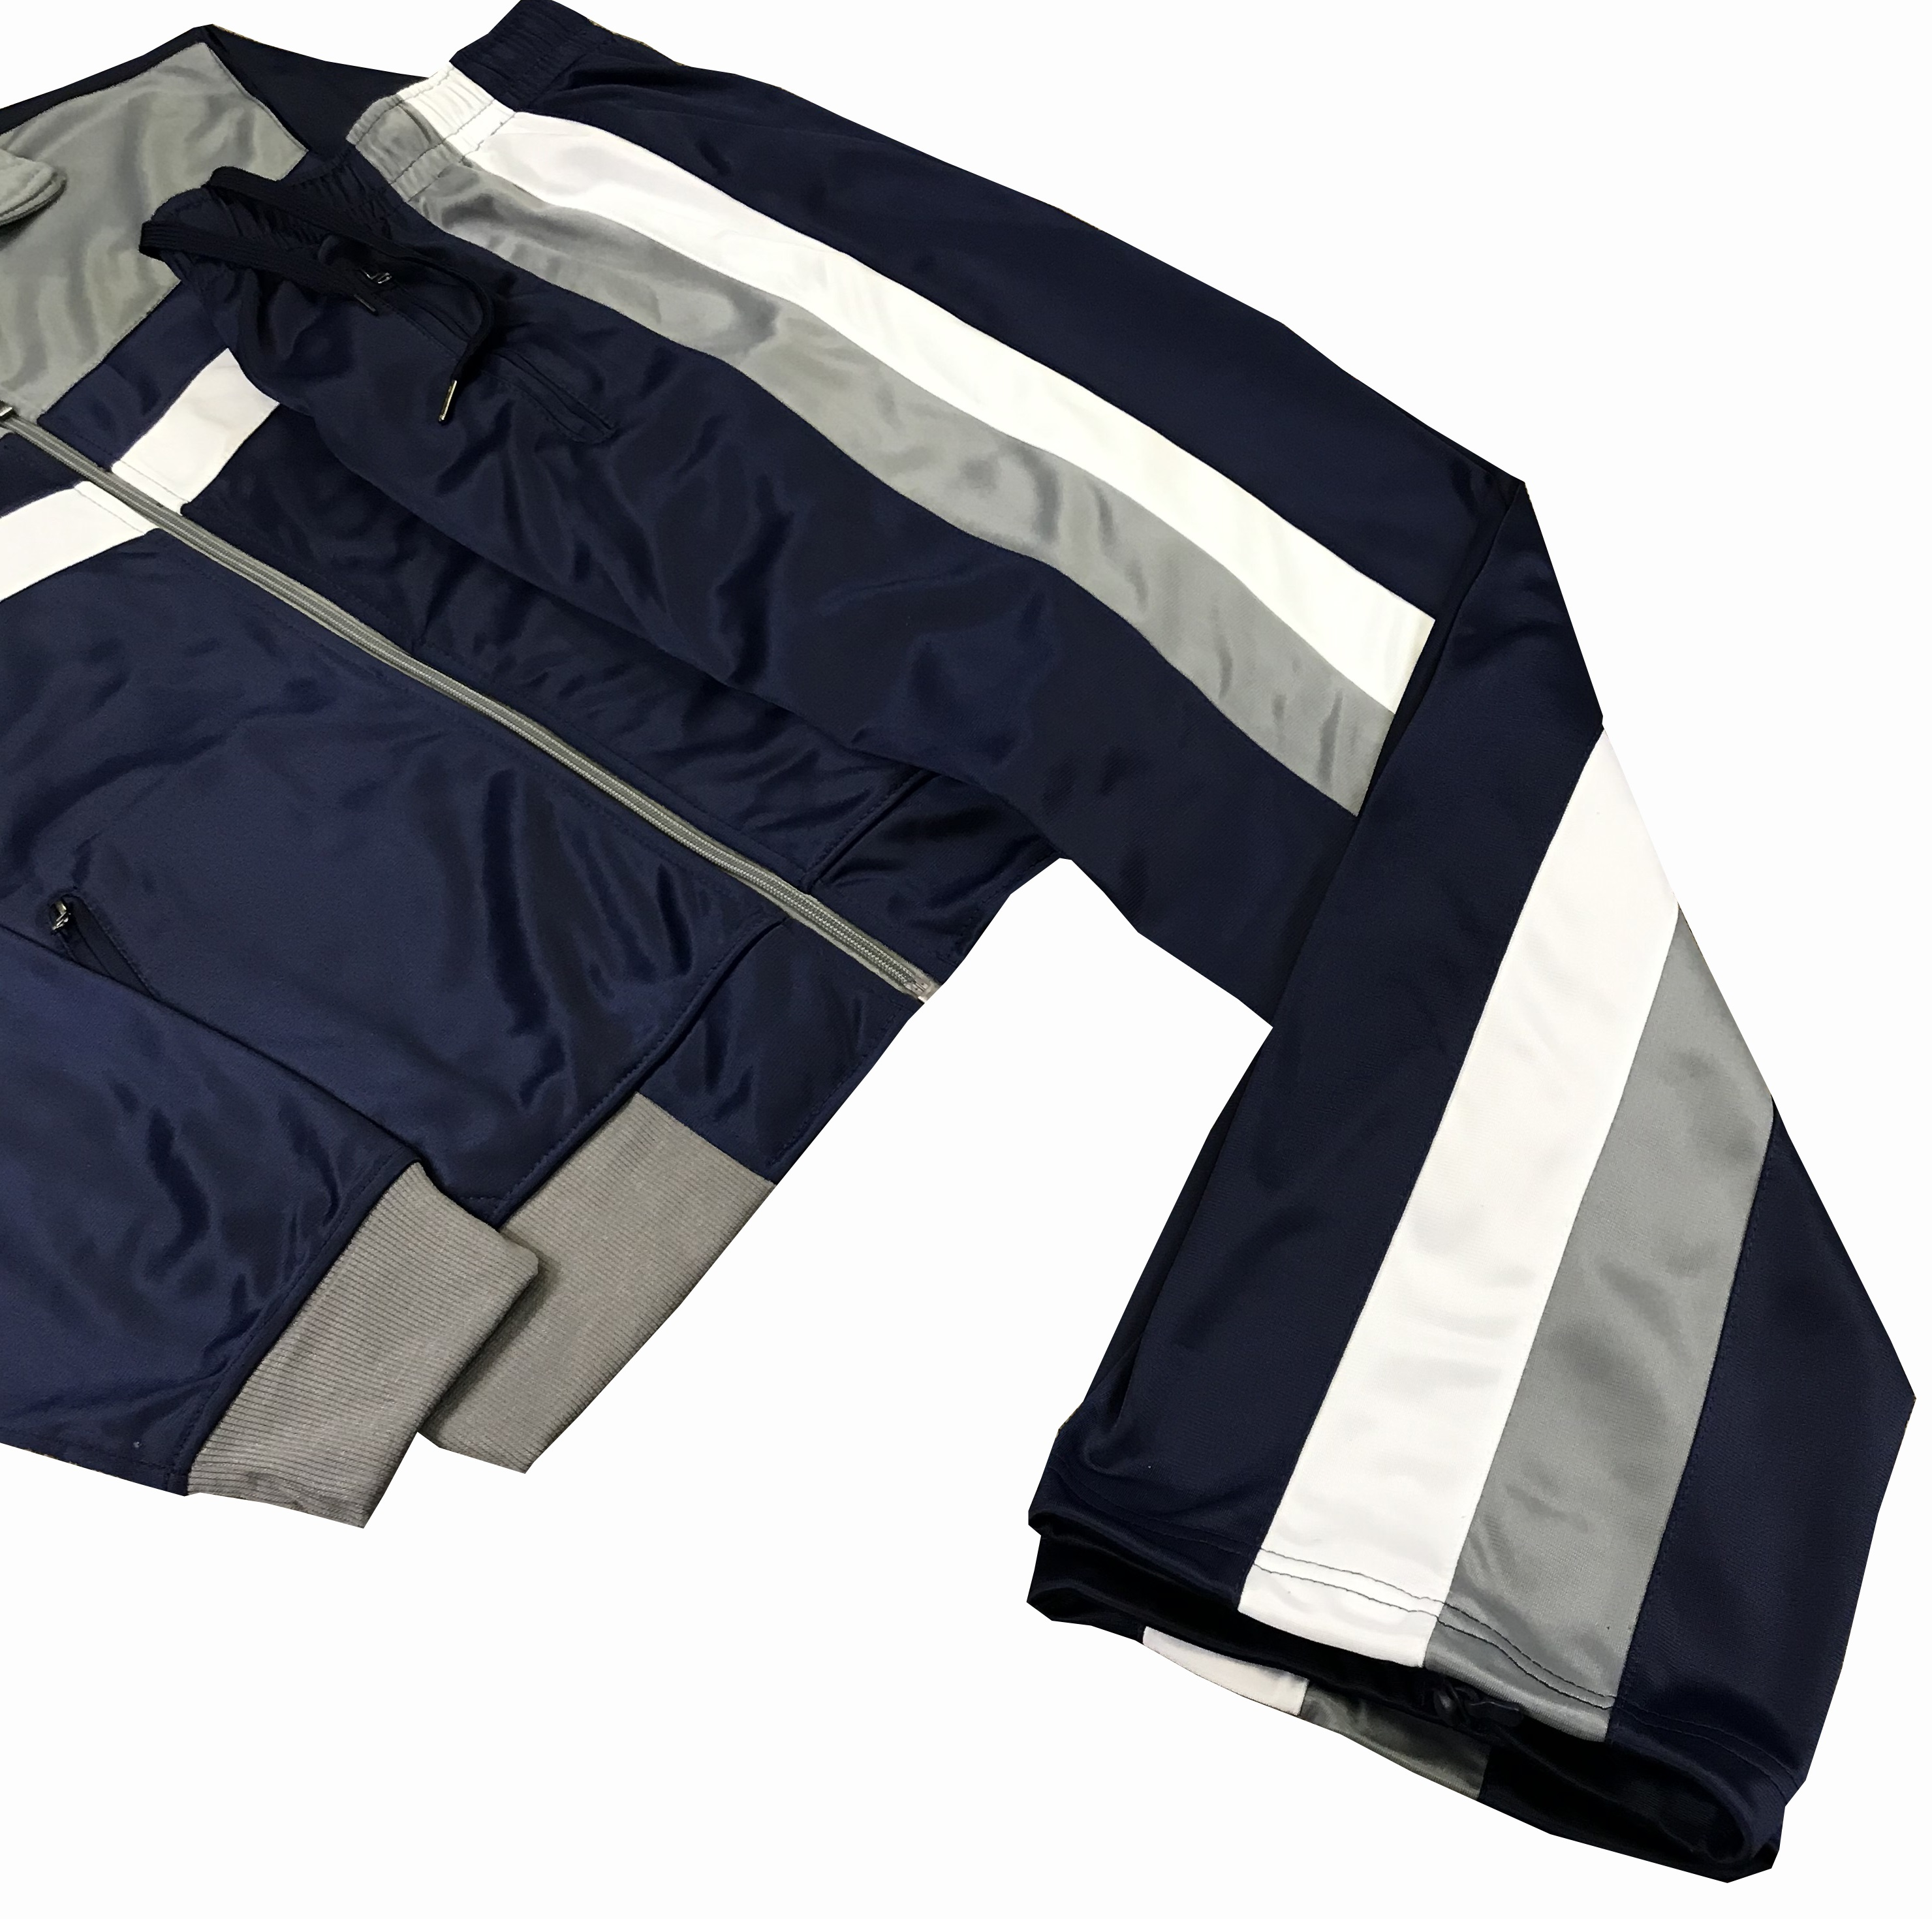 Royal Threads Mens RT Activewear Jogging Suit Track Jacket and Trackpants Outfits